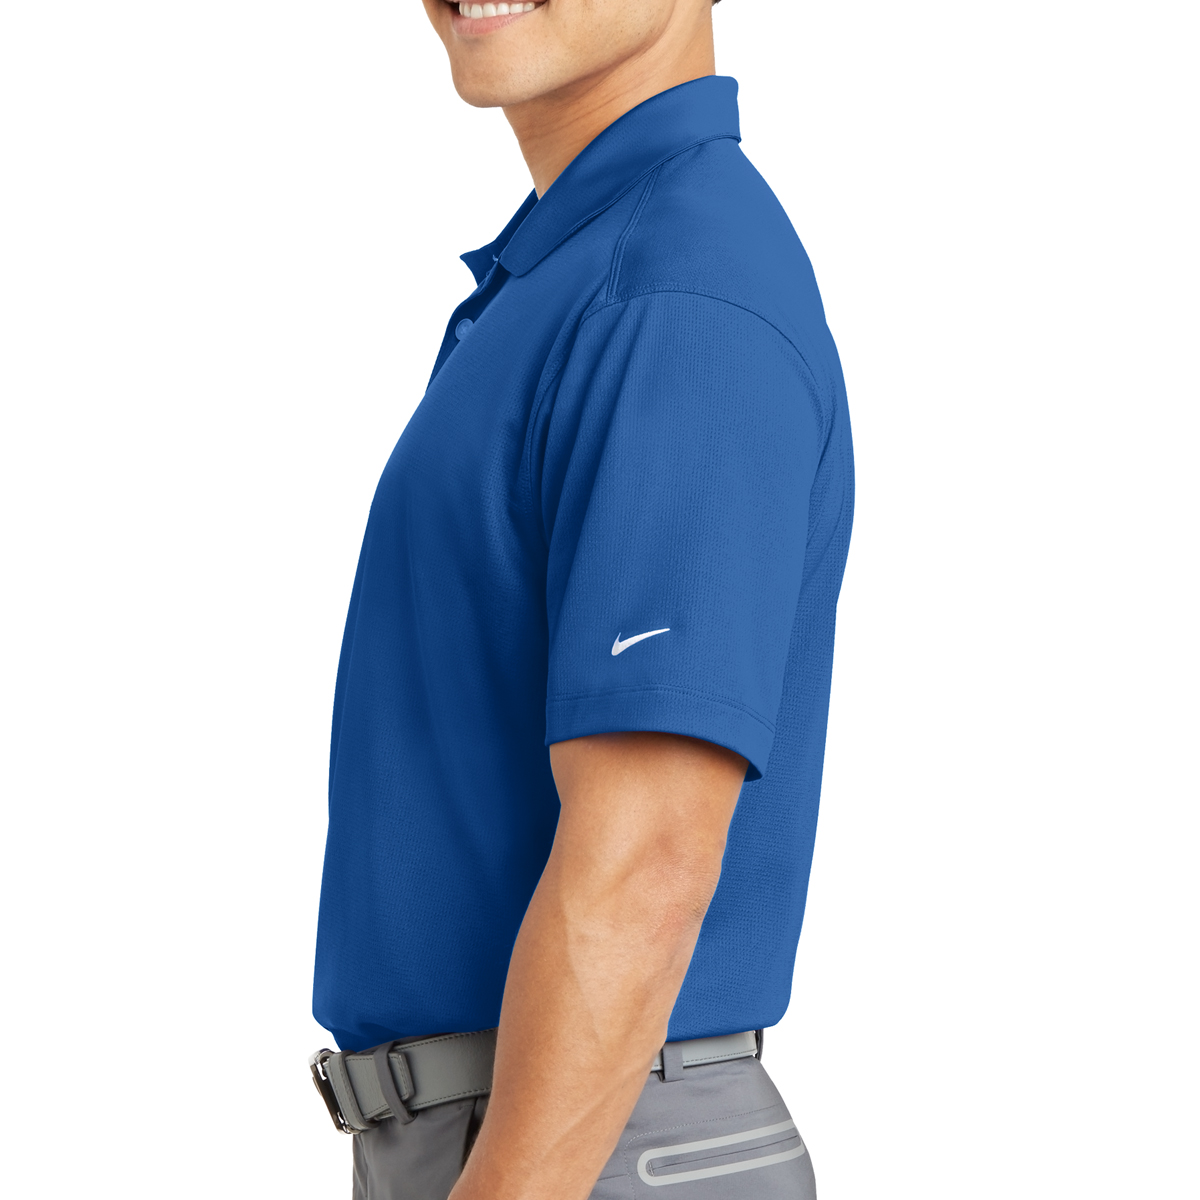 d21971c7 637167 Nike Dri-FIT Vertical Mesh Polo - Hit Promotional Products